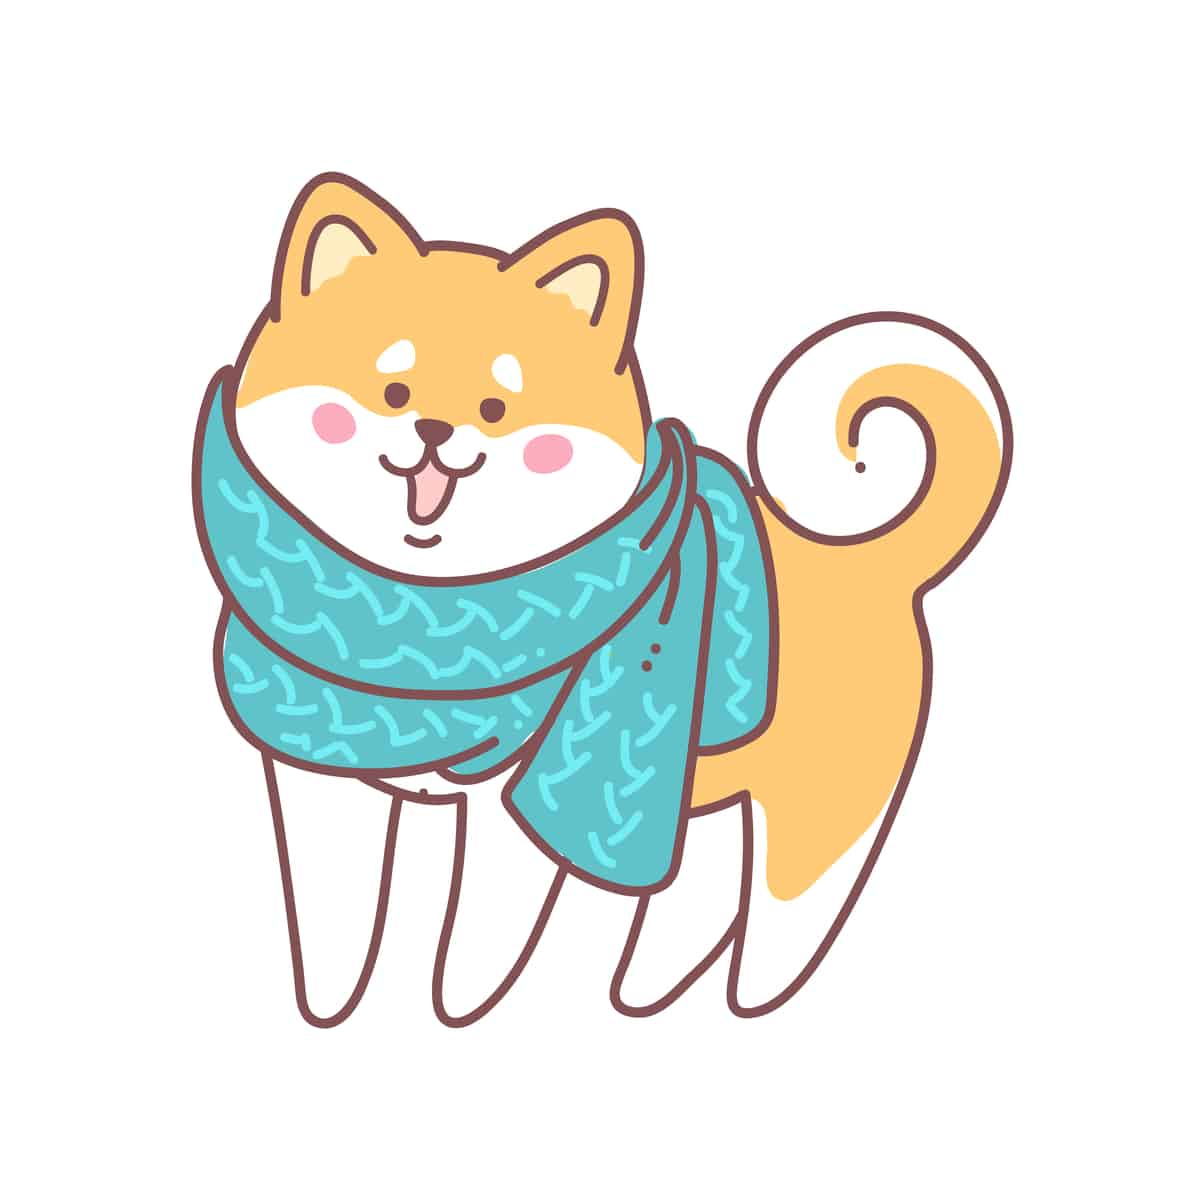 A drawing of a happy shiba inu wearing a green scarf